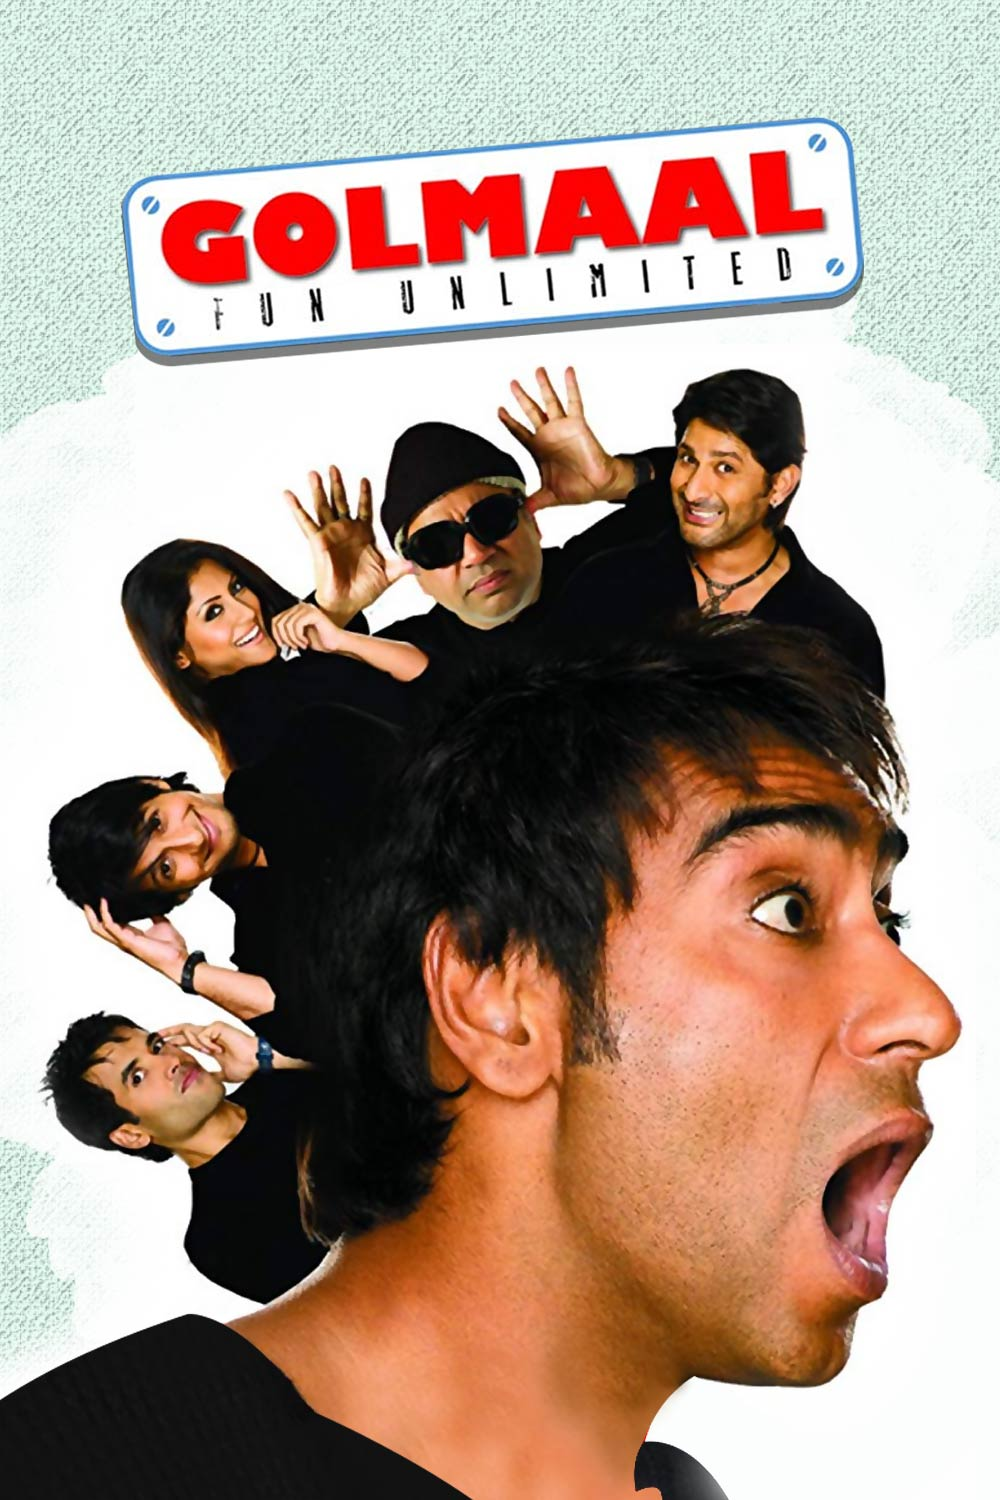 Golmaal : Fun Unlimited